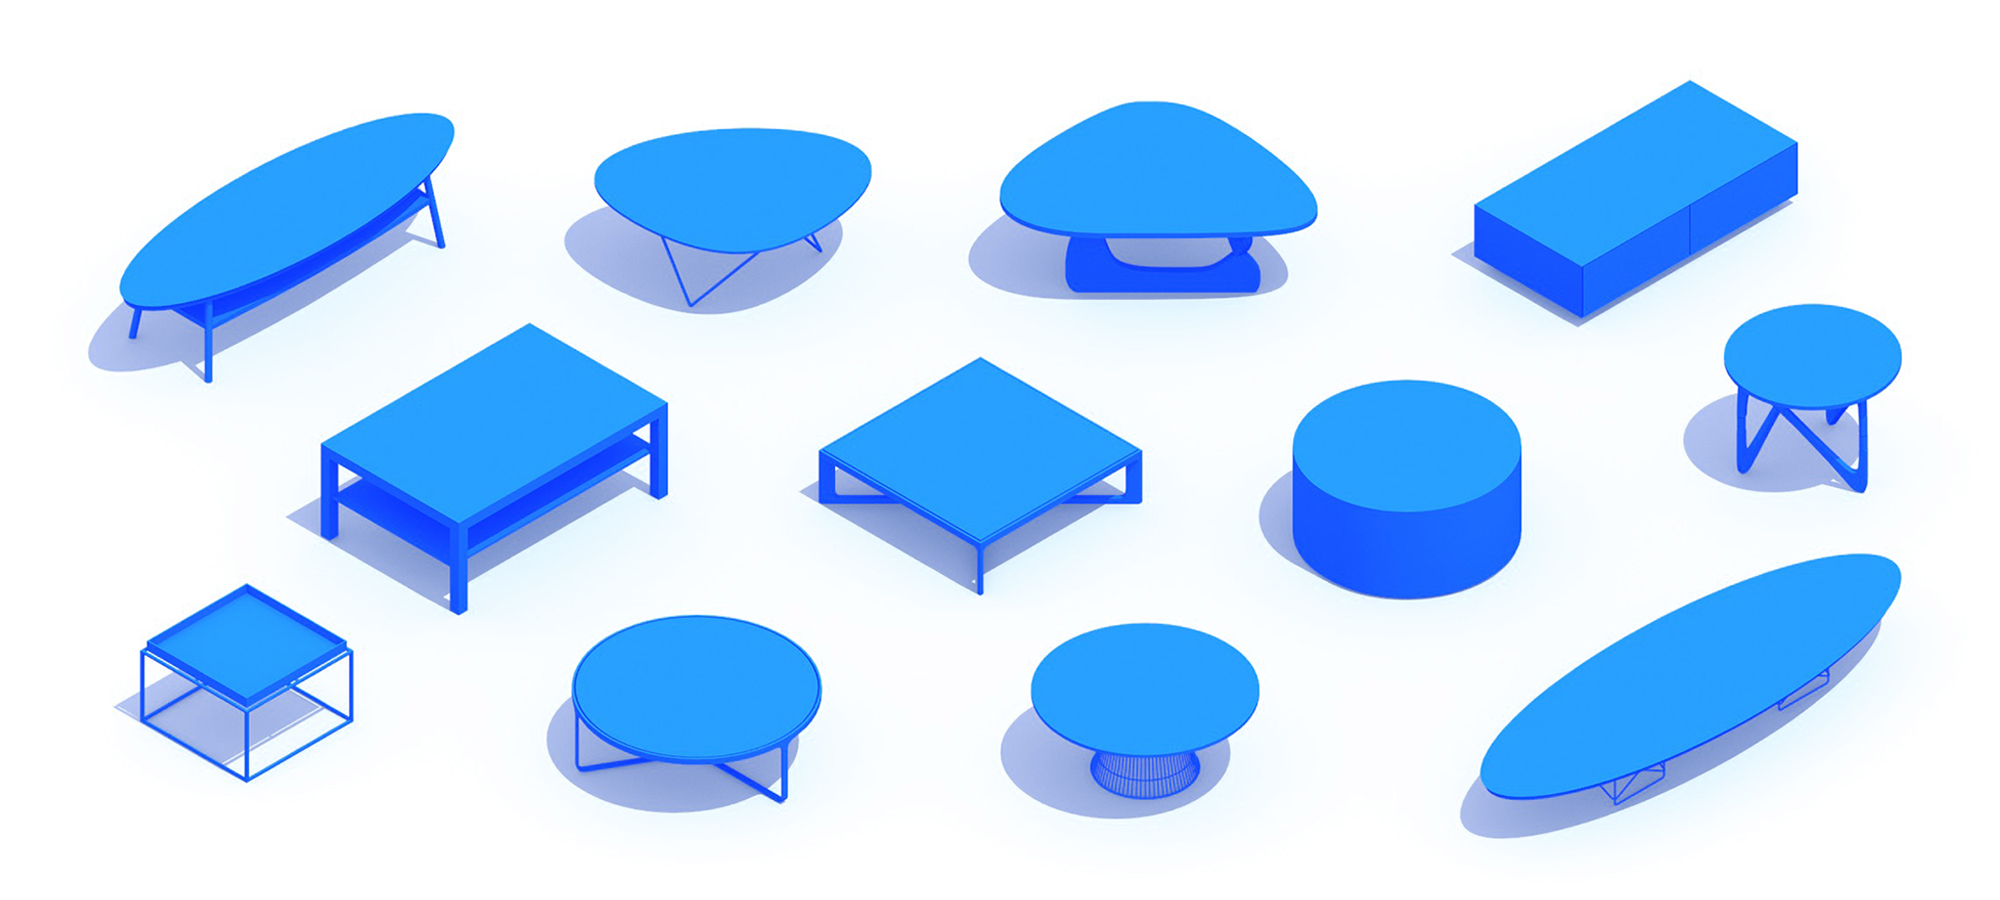 3D perspective of a collection of Coffee Tables (Accent Tables) showing many different sizes, styles, and designs